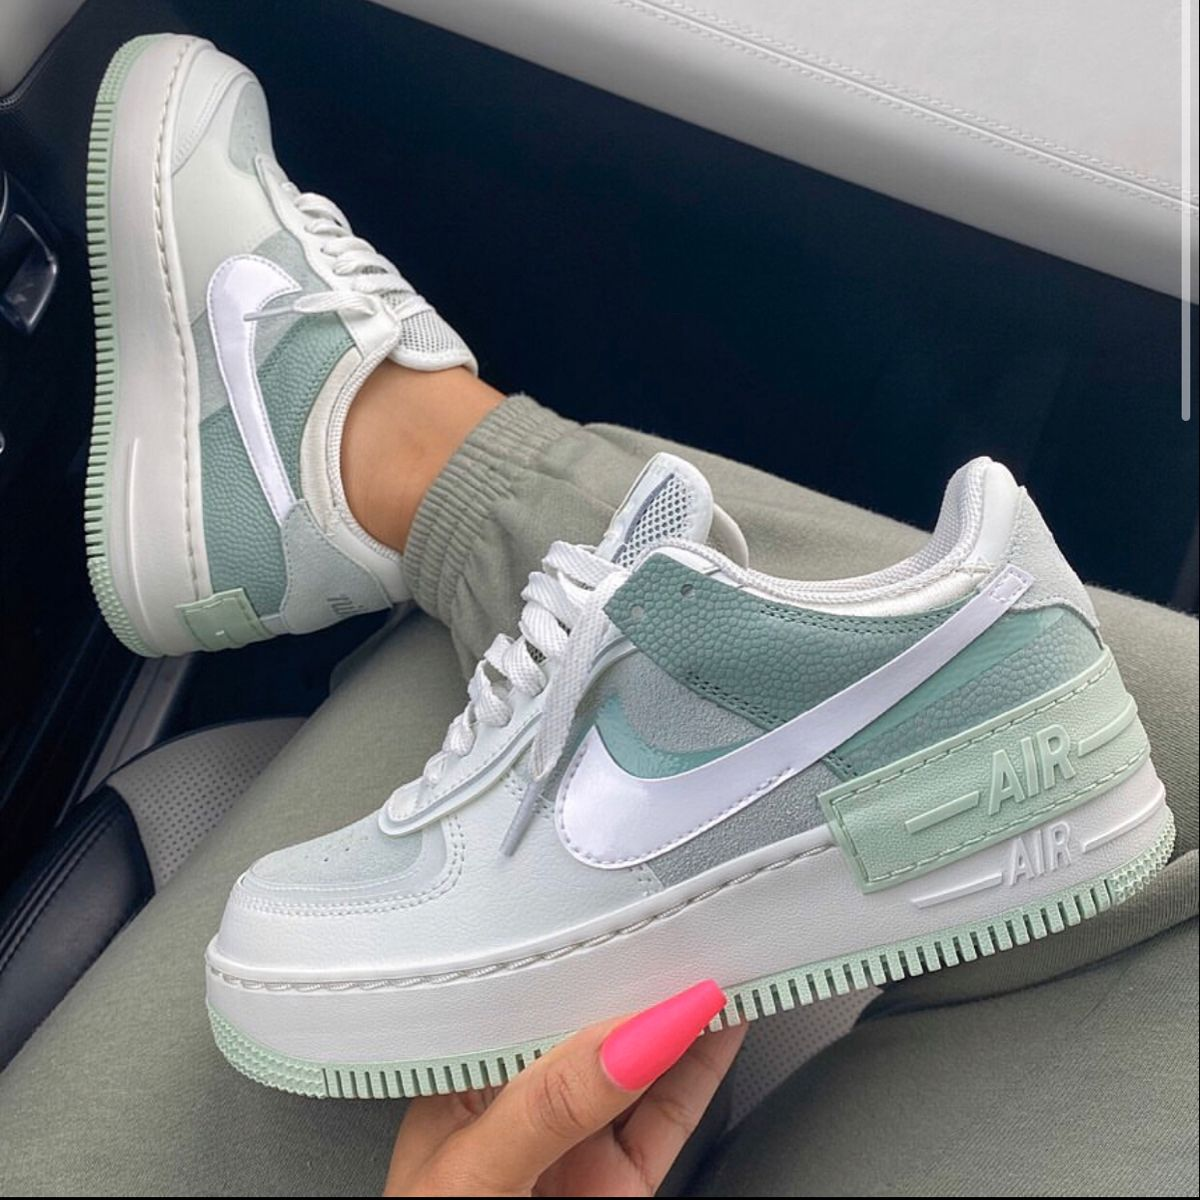 Nike air shadow mint green in 2020 | Fresh shoes, Aesthetic